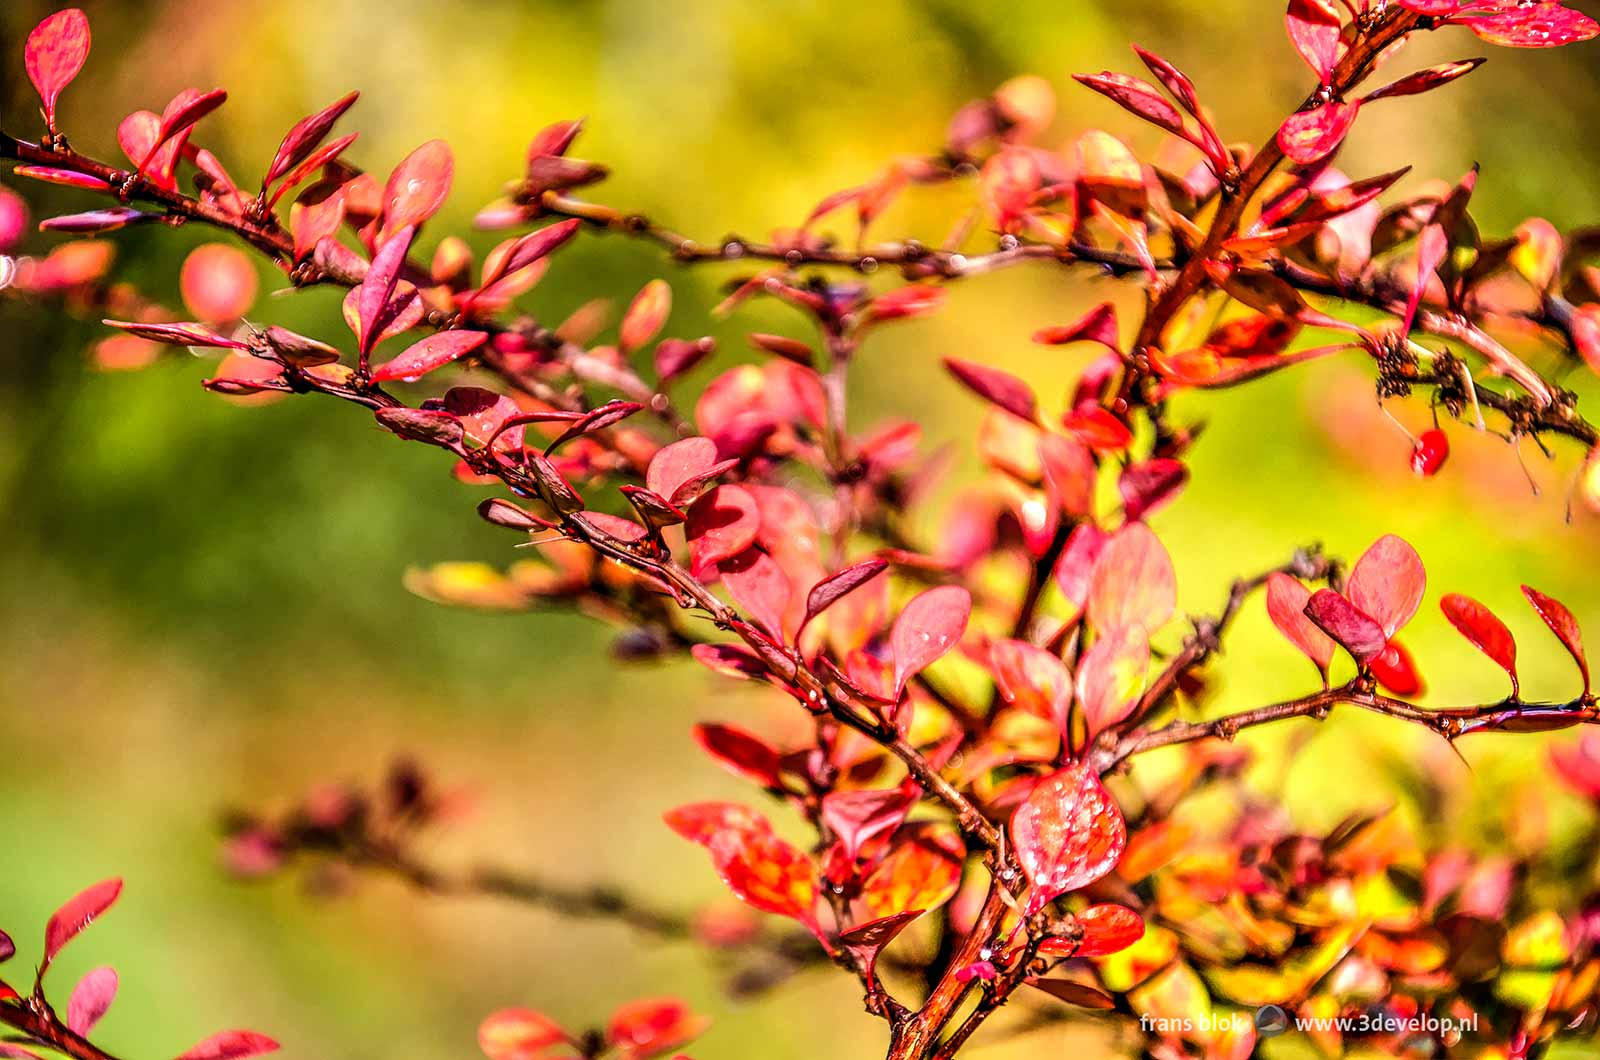 Close-up of a shrub with red leaves against a yellow and green blurry background in autumn